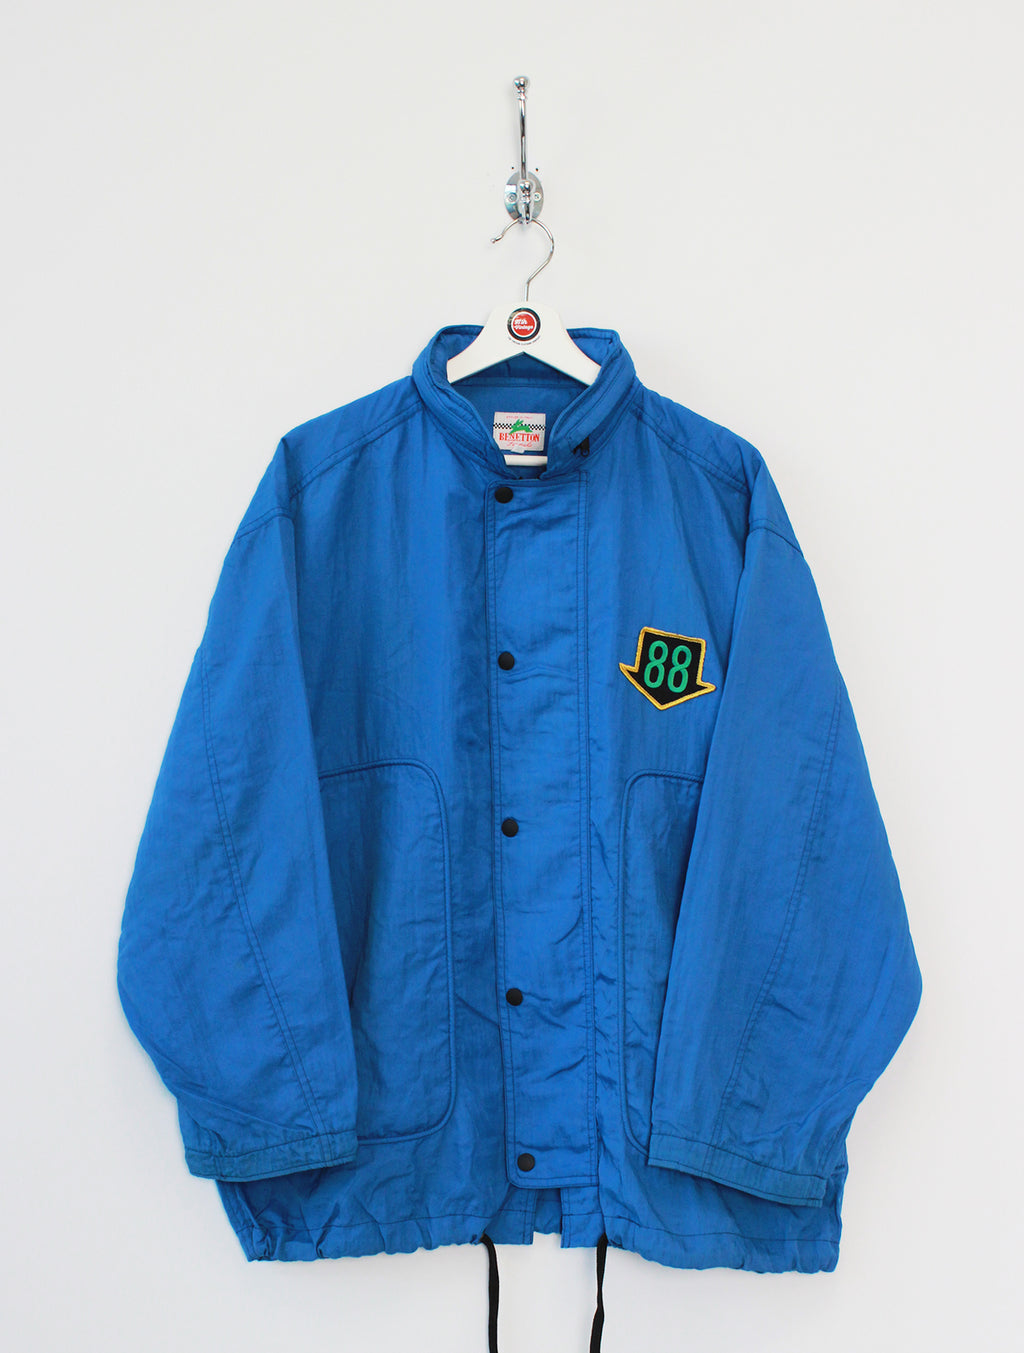 Benetton Formula 1 Jacket (XL)